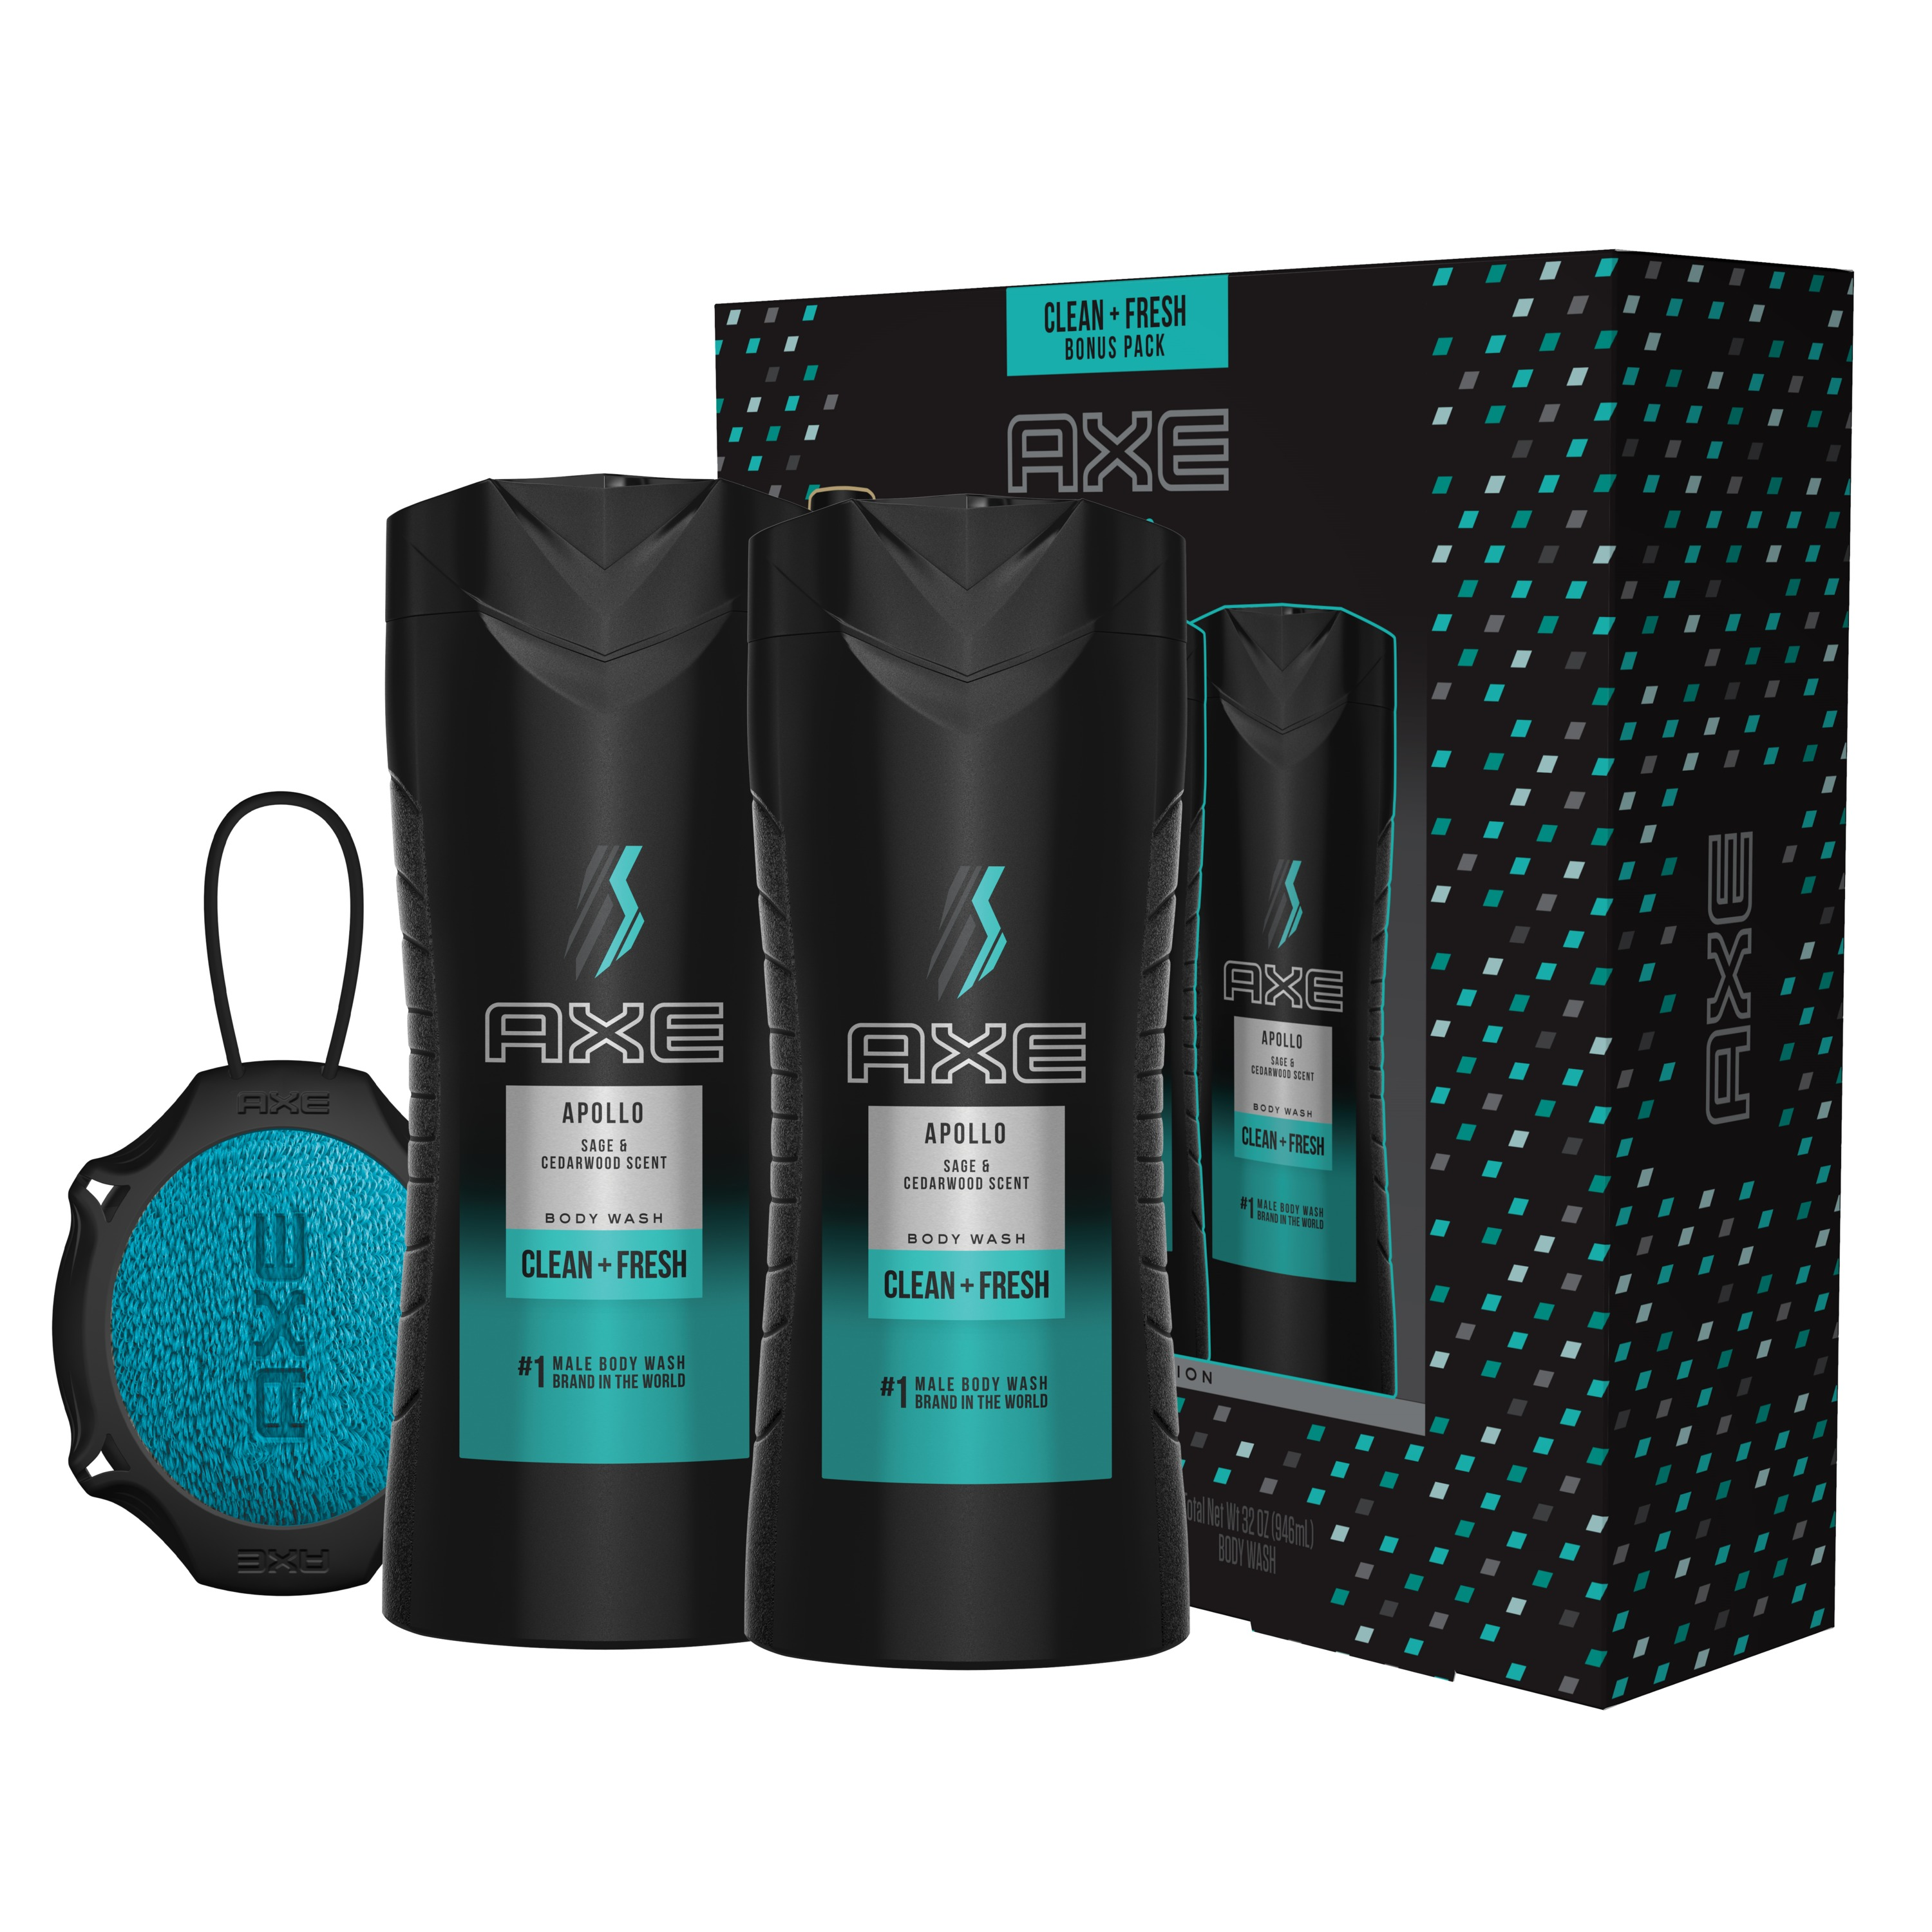 AXE 4-Pc Apollo Regimen Gift Set for Men with BONUS Trial Deo Body Spray (2 x Body Wash, Detailer)